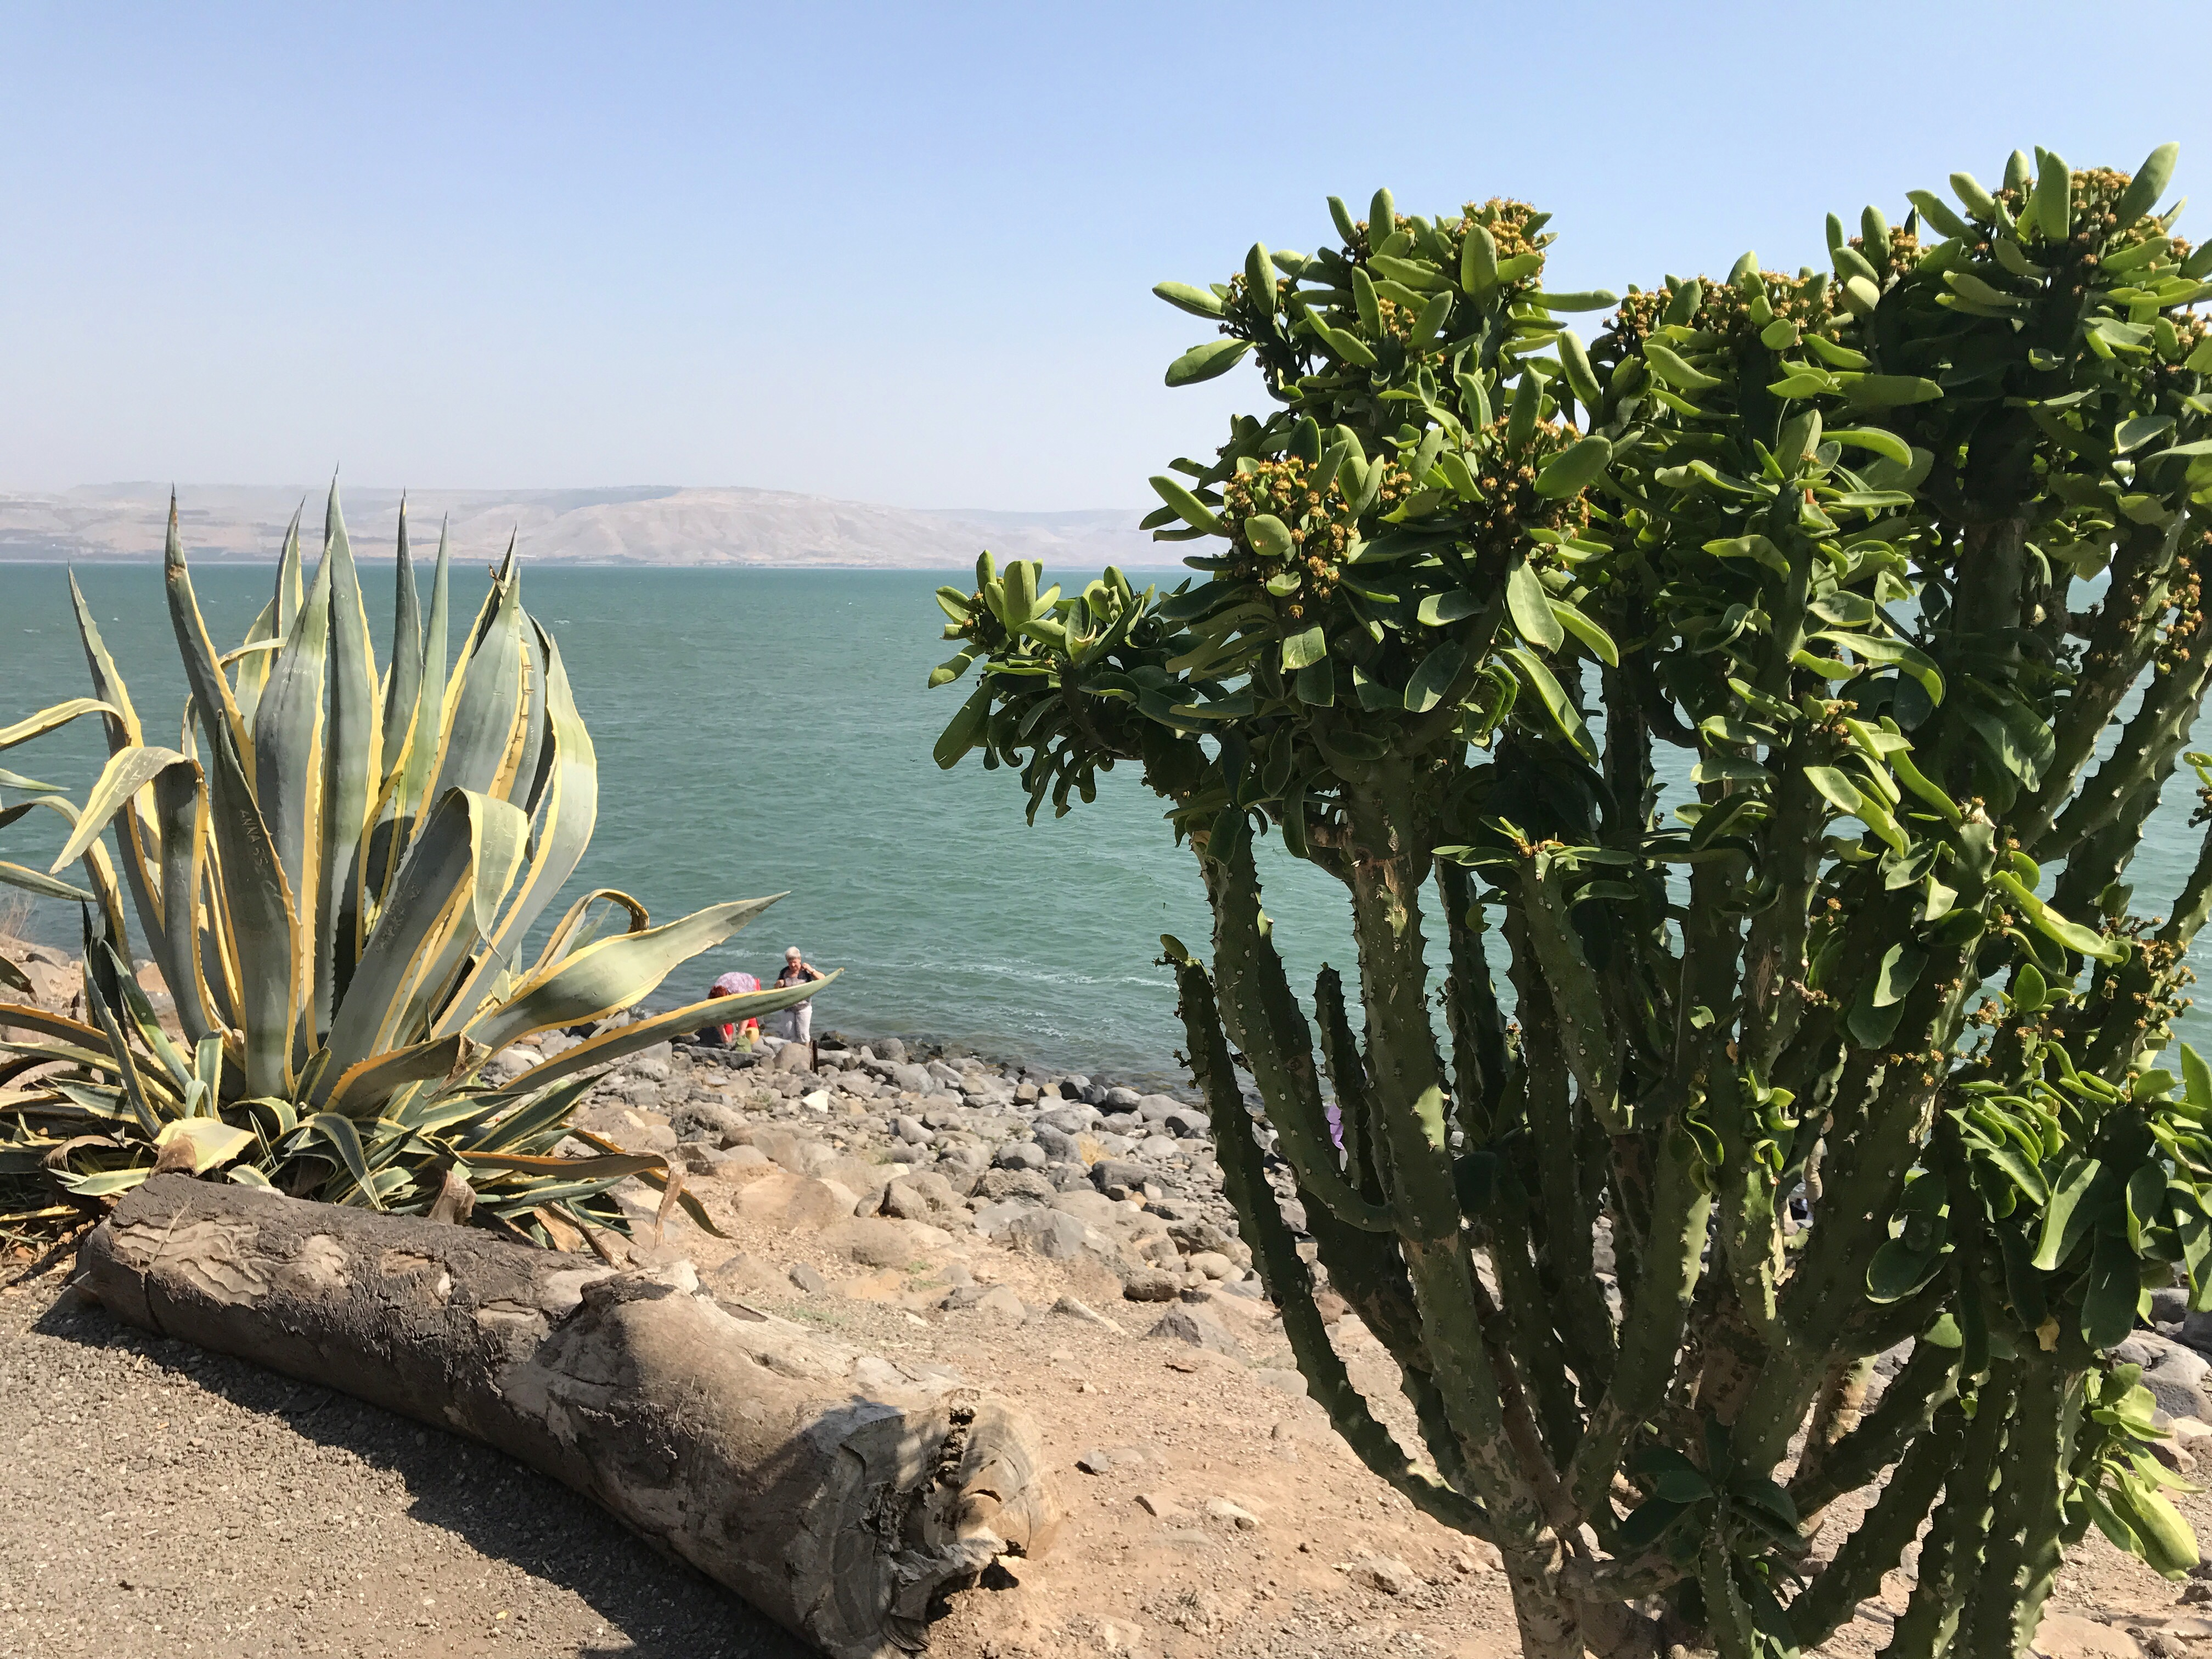 A peaceful day on the Sea of Galilee, visiting the ruins at Capernaum